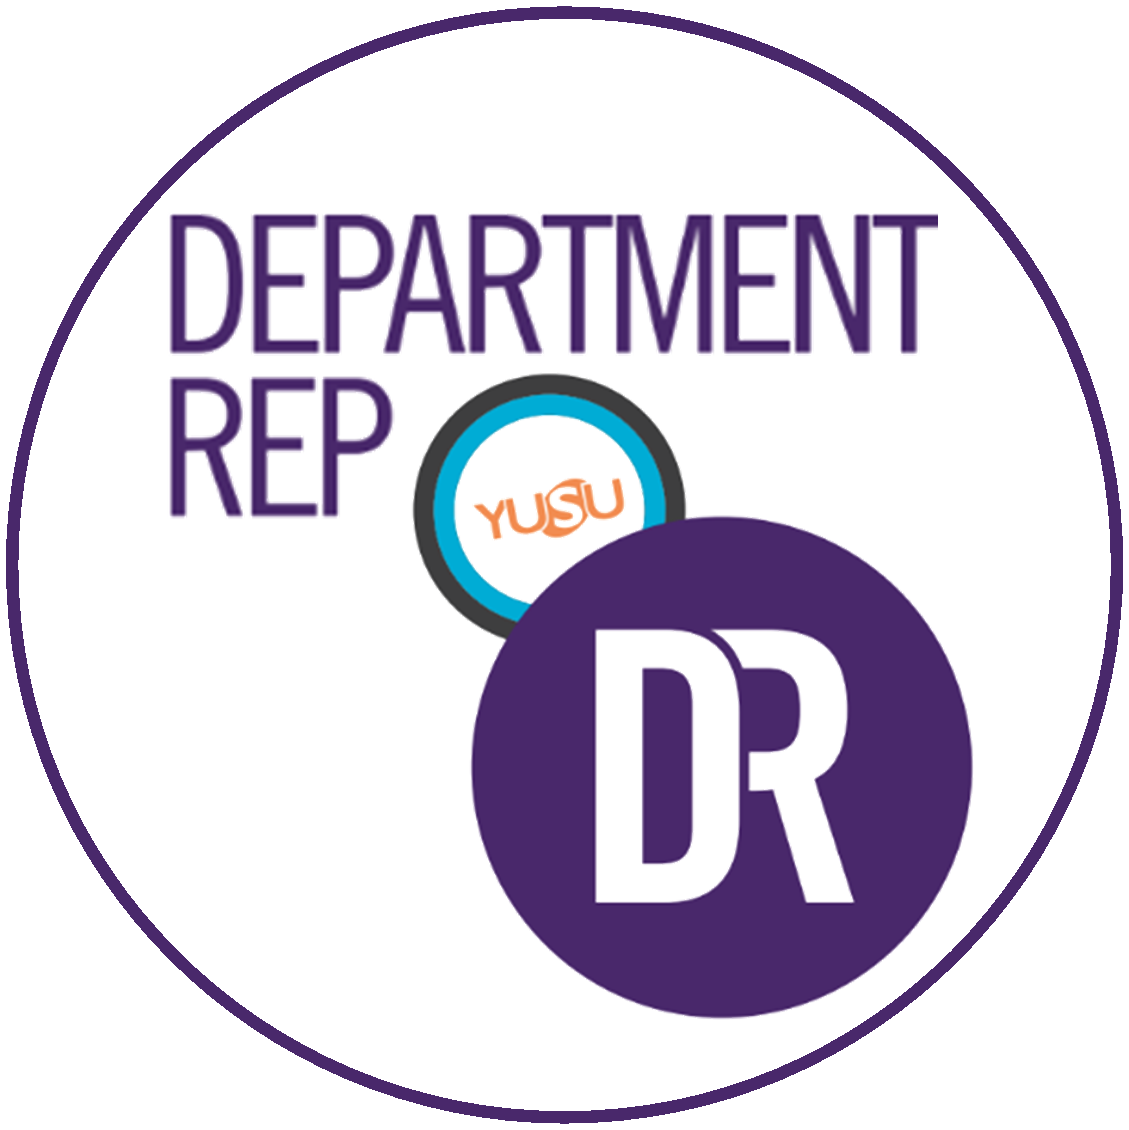 Department Reps